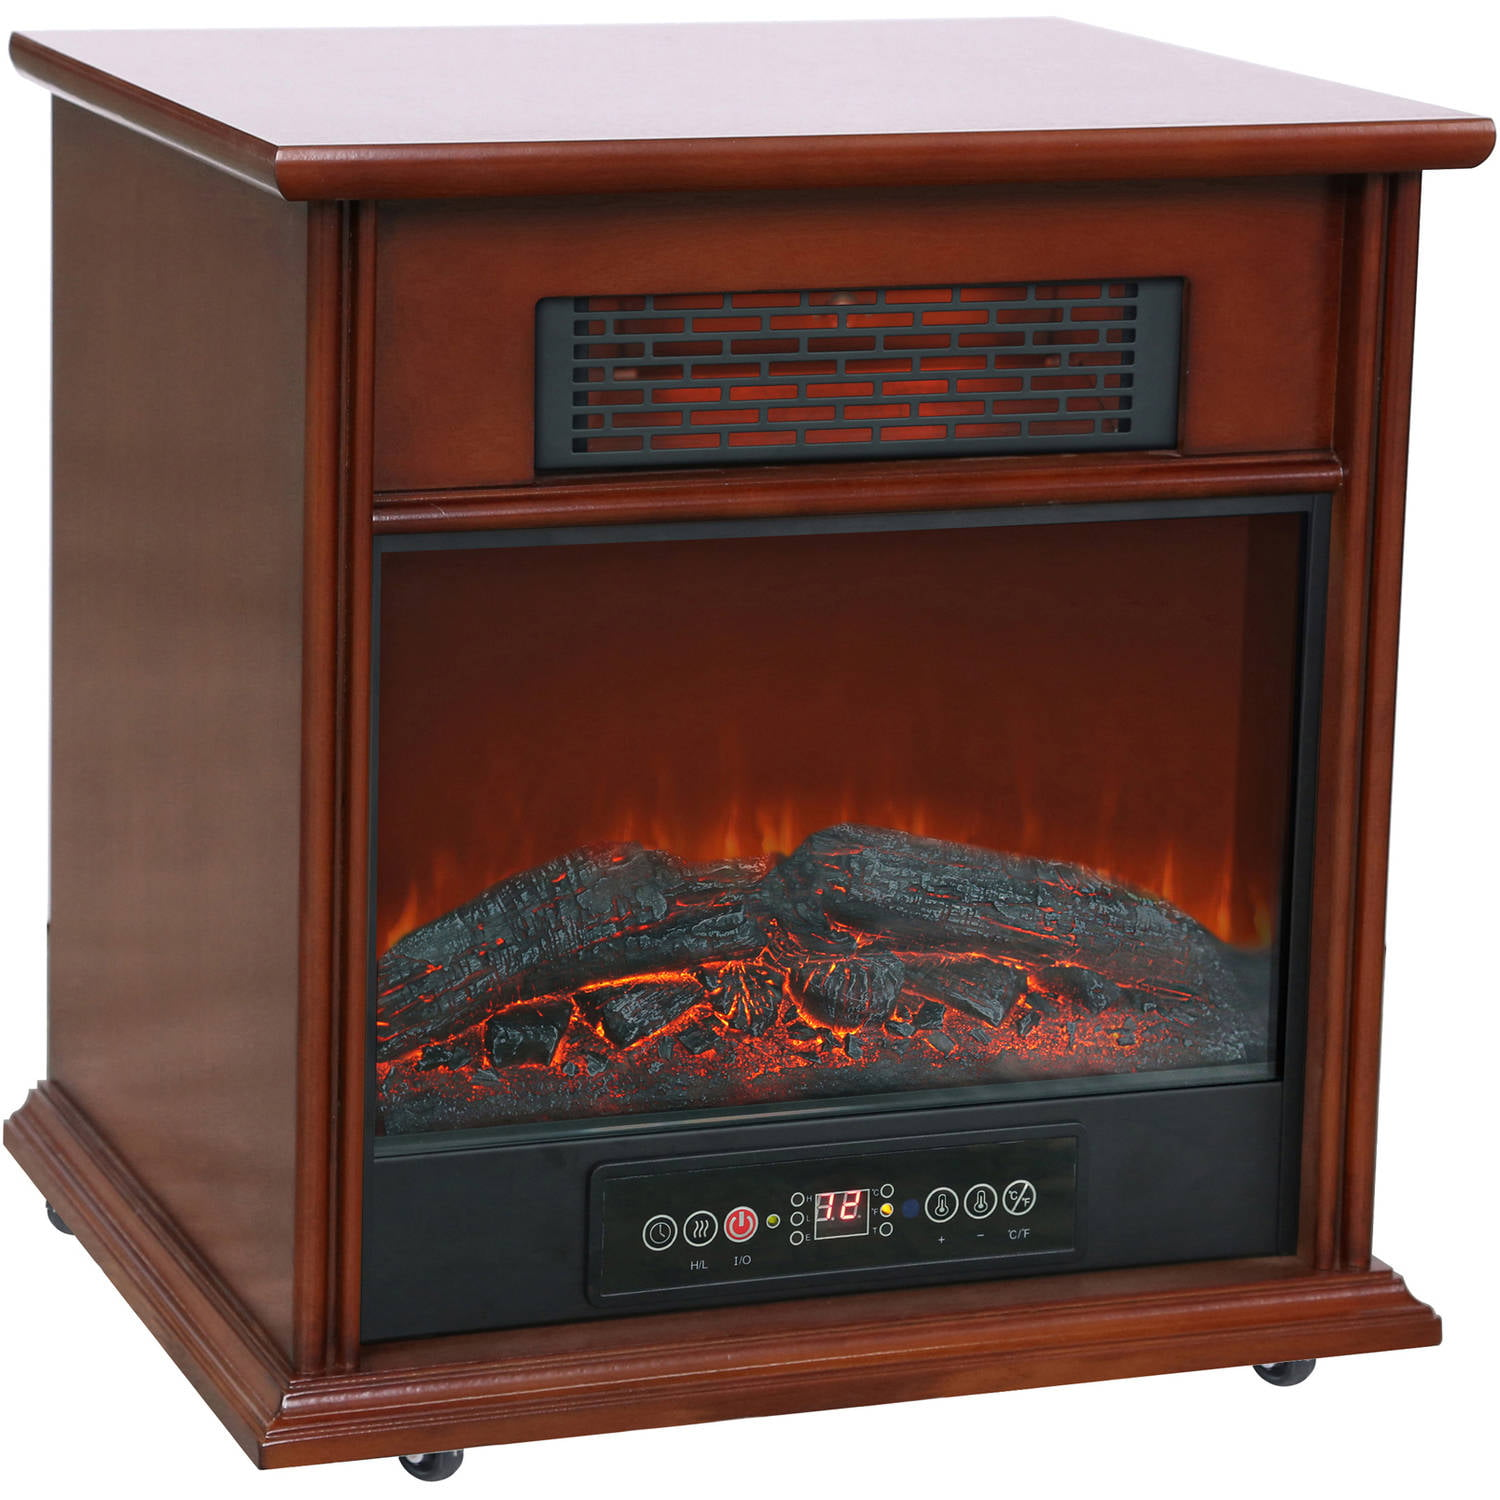 1500W Hearth Trends Infrared Electric Fireplace by